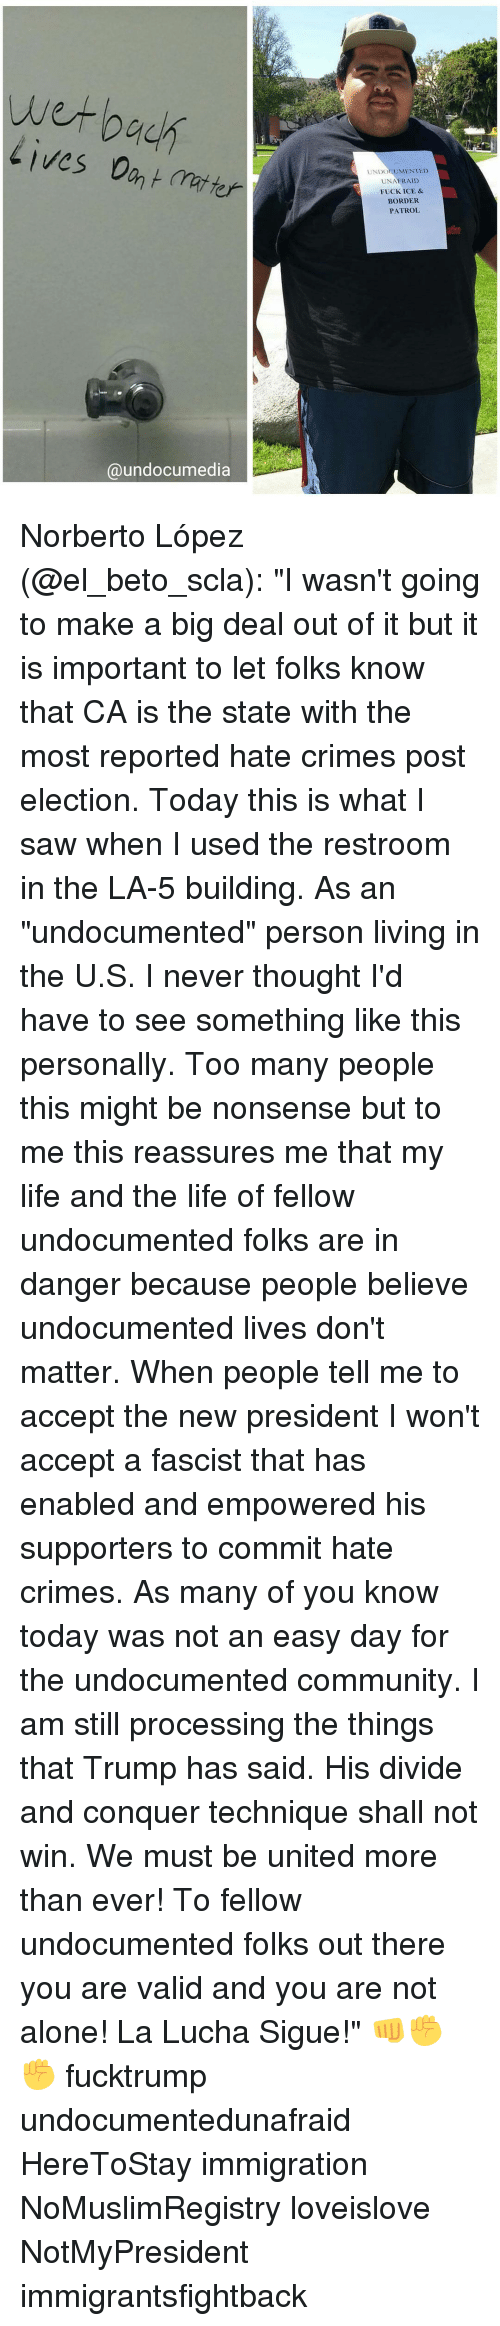 """Memes, Nonsense, and 🤖: wet back  Lives Dant 7  Ca undocumedia  UNDOCUMENTED  UNA  FUCK ICE &  BORDER  PATROL Norberto López (@el_beto_scla): """"I wasn't going to make a big deal out of it but it is important to let folks know that CA is the state with the most reported hate crimes post election. Today this is what I saw when I used the restroom in the LA-5 building. As an """"undocumented"""" person living in the U.S. I never thought I'd have to see something like this personally. Too many people this might be nonsense but to me this reassures me that my life and the life of fellow undocumented folks are in danger because people believe undocumented lives don't matter. When people tell me to accept the new president I won't accept a fascist that has enabled and empowered his supporters to commit hate crimes. As many of you know today was not an easy day for the undocumented community. I am still processing the things that Trump has said. His divide and conquer technique shall not win. We must be united more than ever! To fellow undocumented folks out there you are valid and you are not alone! La Lucha Sigue!"""" 👊✊✊ fucktrump undocumentedunafraid HereToStay immigration NoMuslimRegistry loveislove NotMyPresident immigrantsfightback"""